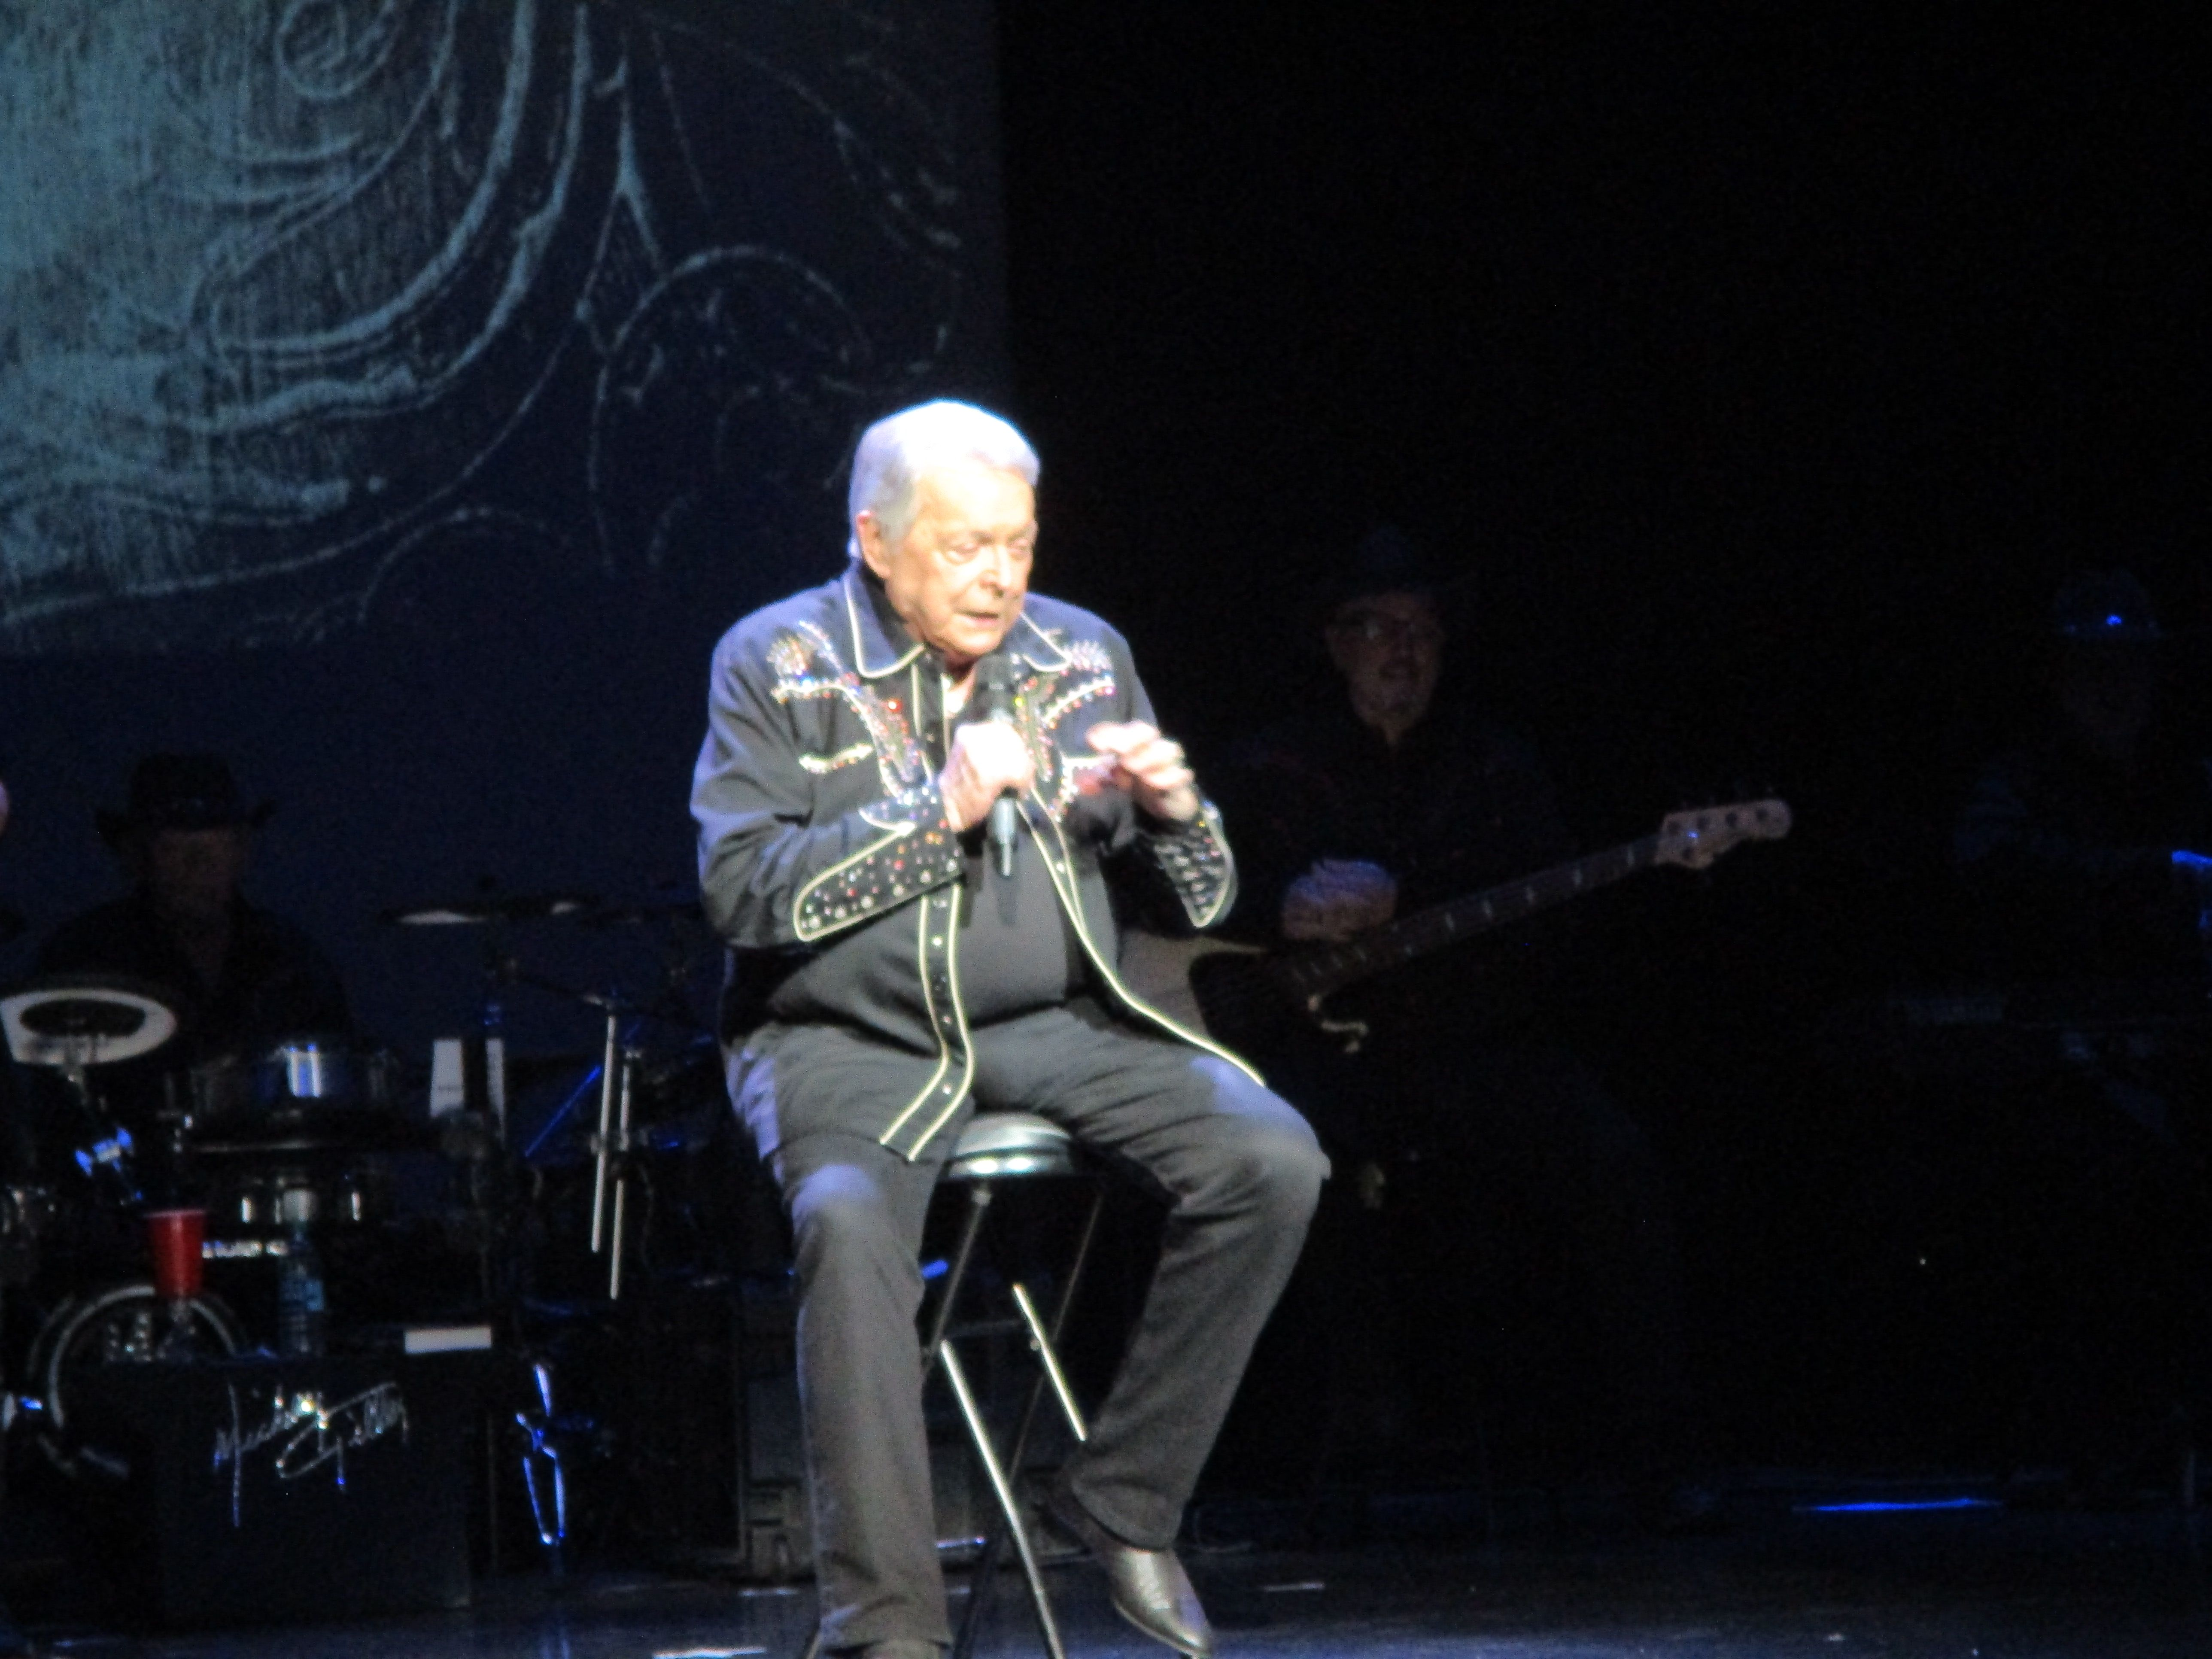 Experience the Mickey Gilley and Johnny Lee Urban Cowboy Reunion Show